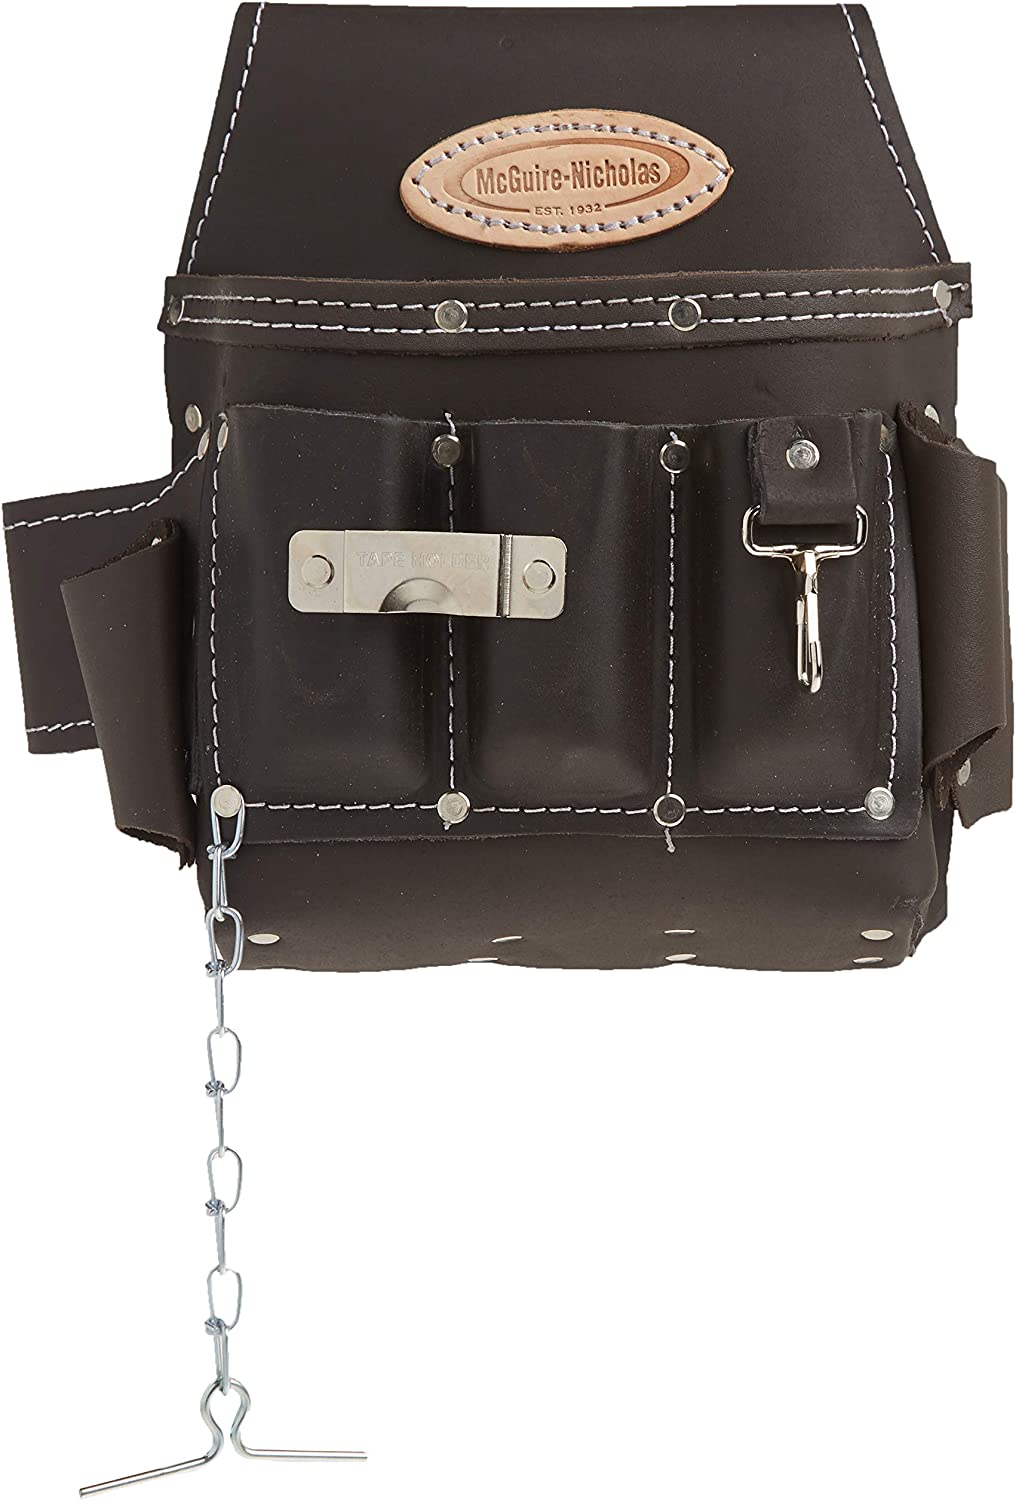 McGuire-Nicholas 526-CC Brown Professional Electrician'S Pouch, oil tanned leather - Tool Bags -